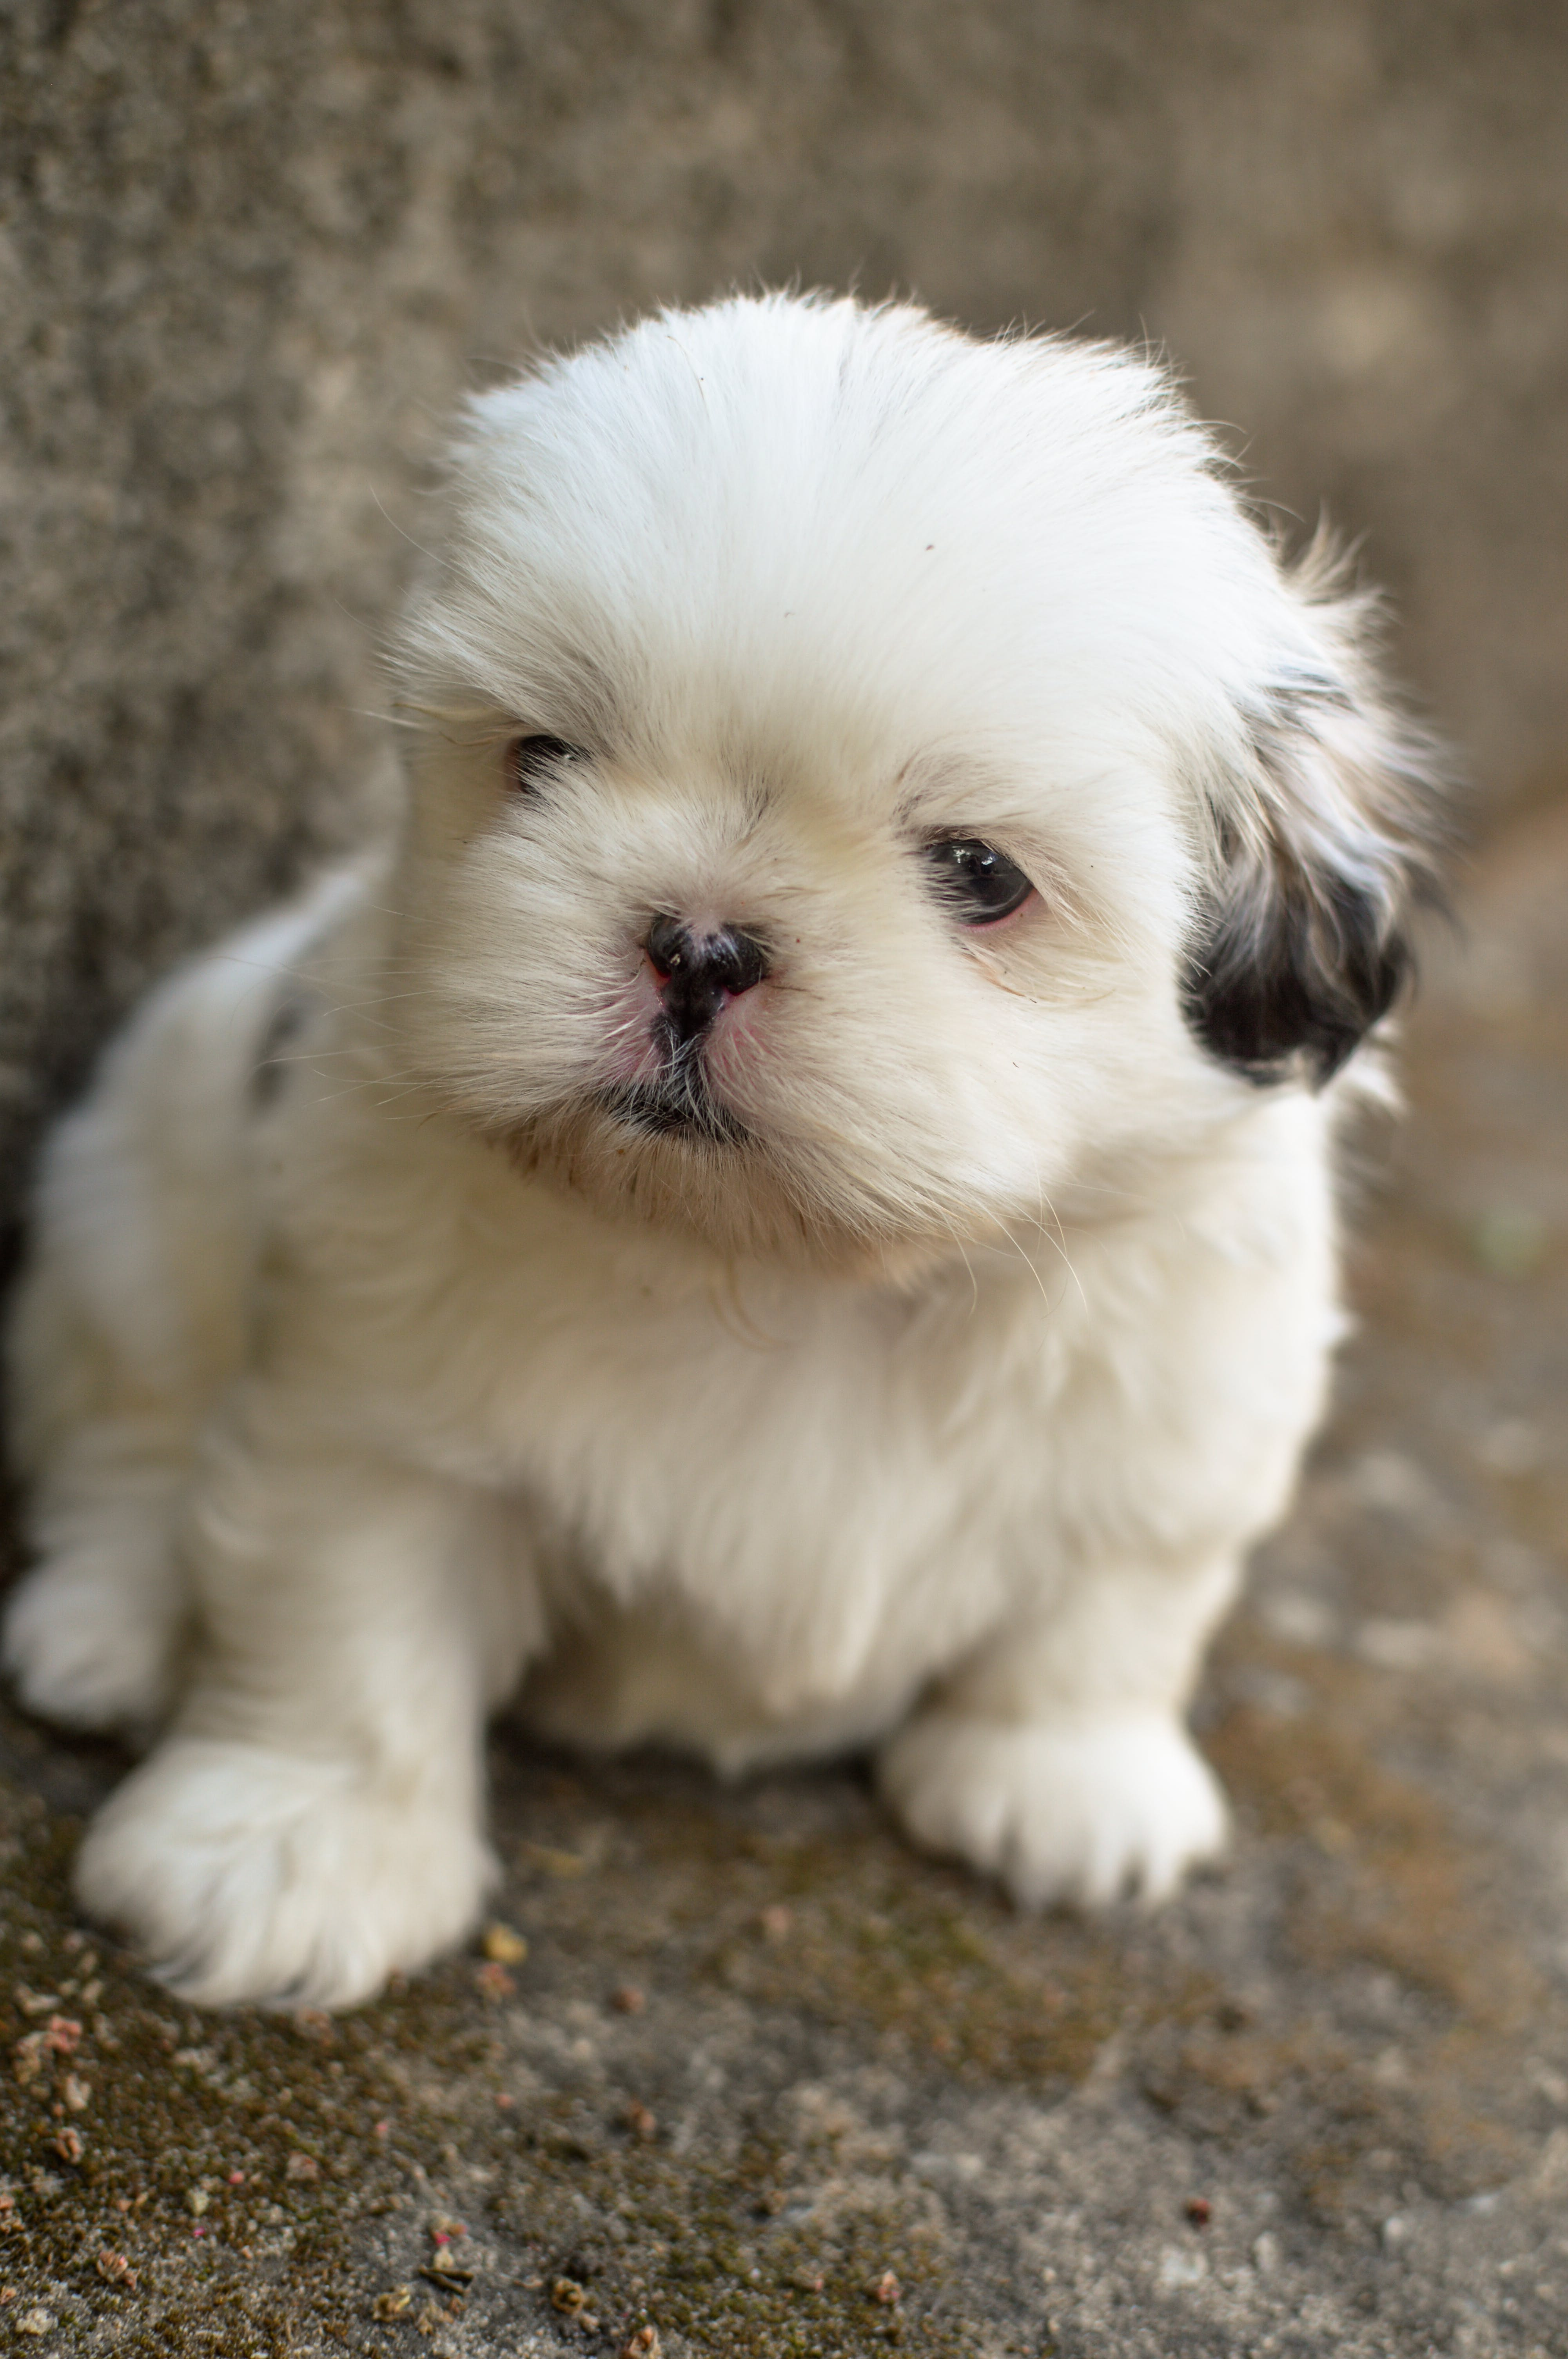 White and Black Shih Tzu Puppy